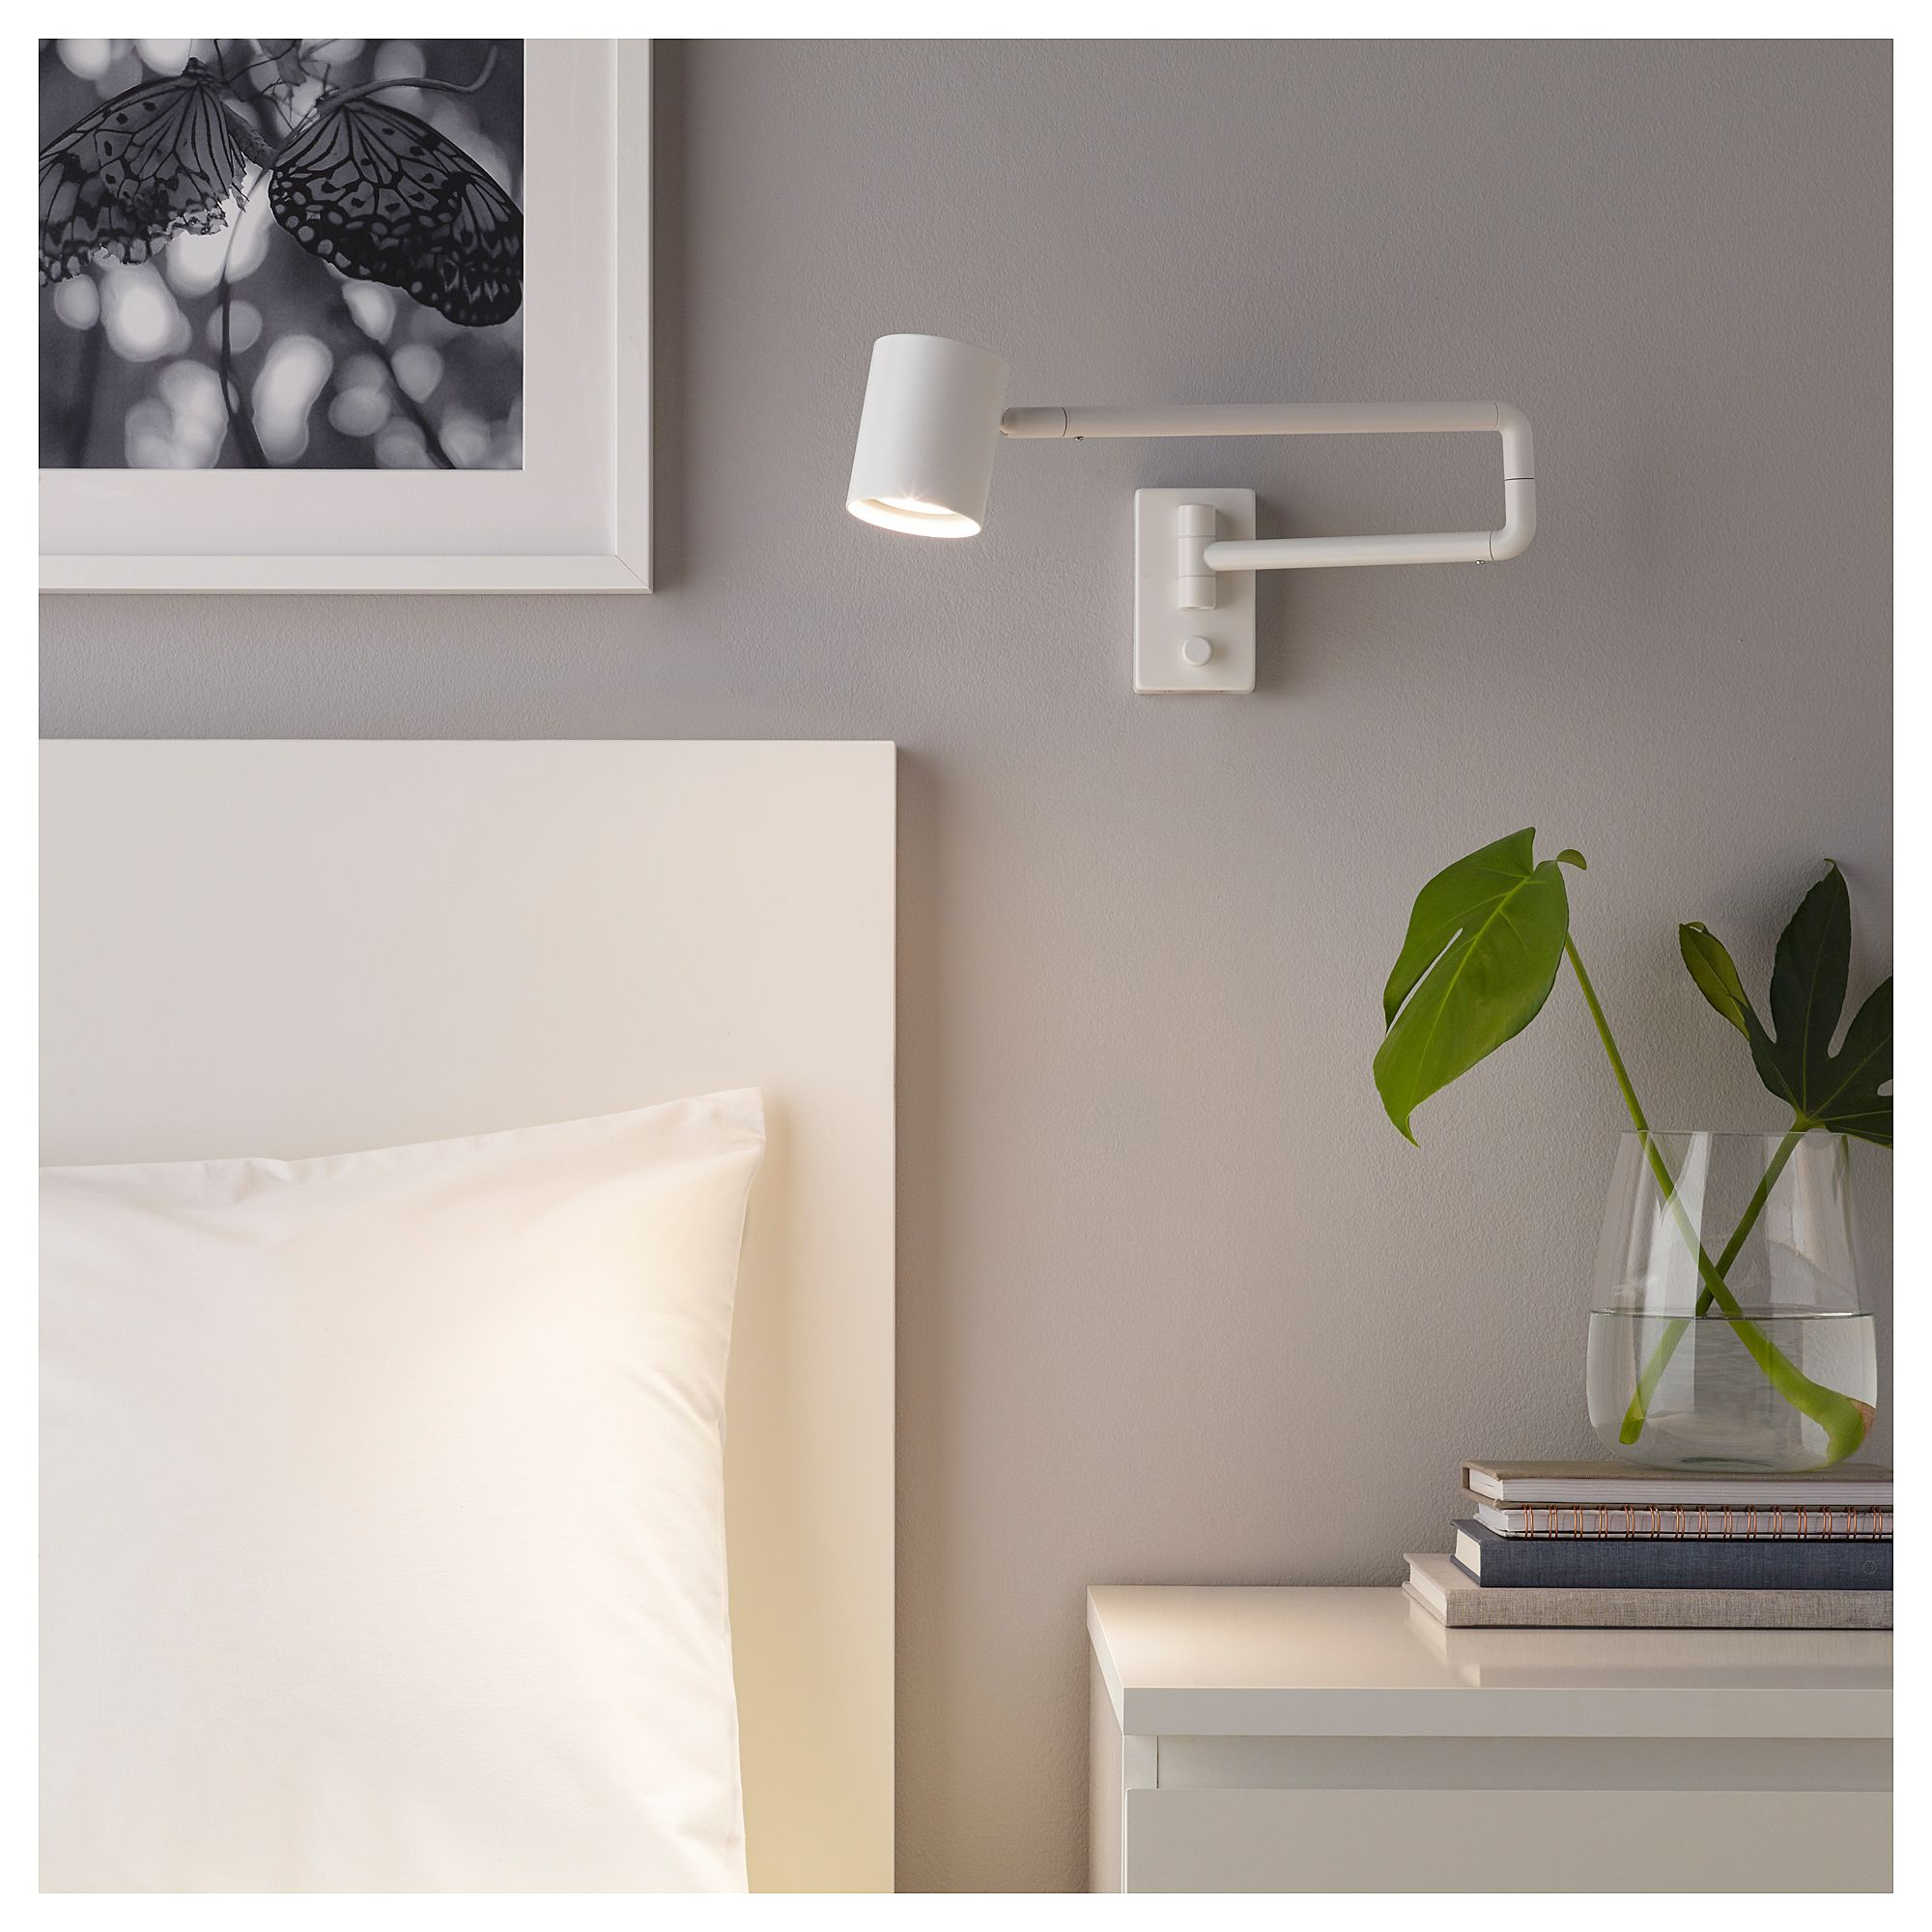 Nymane Wall Lamp With Swing Arm Led Bulb White Ikea Reading Lamp Small Bedroom Decor Wall Lamp